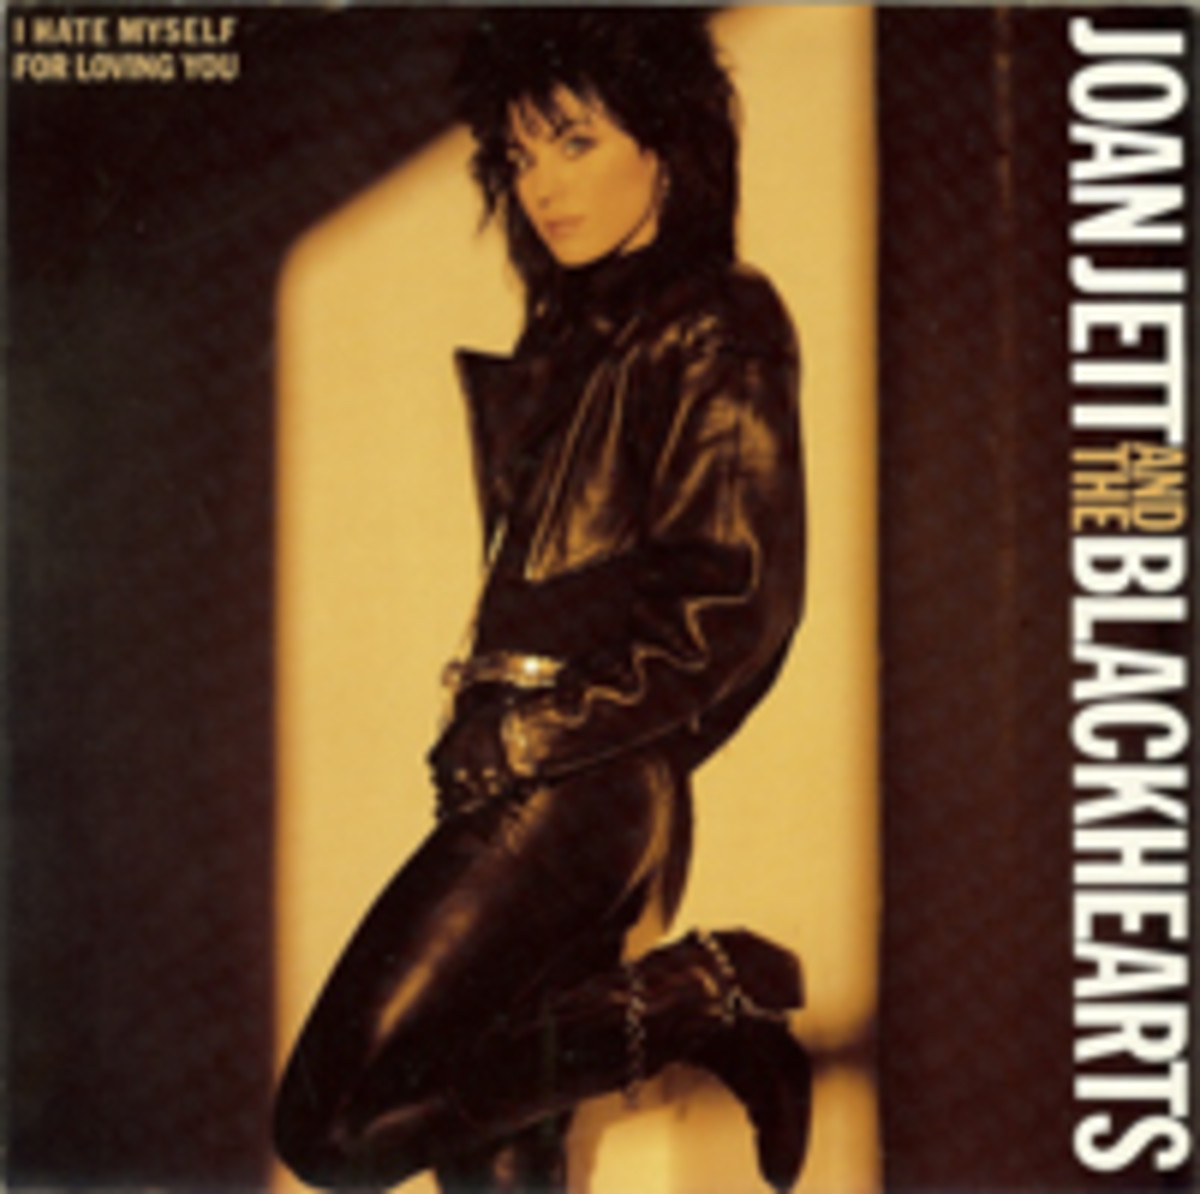 Joan Jett and The Blackhearts picture sleeve